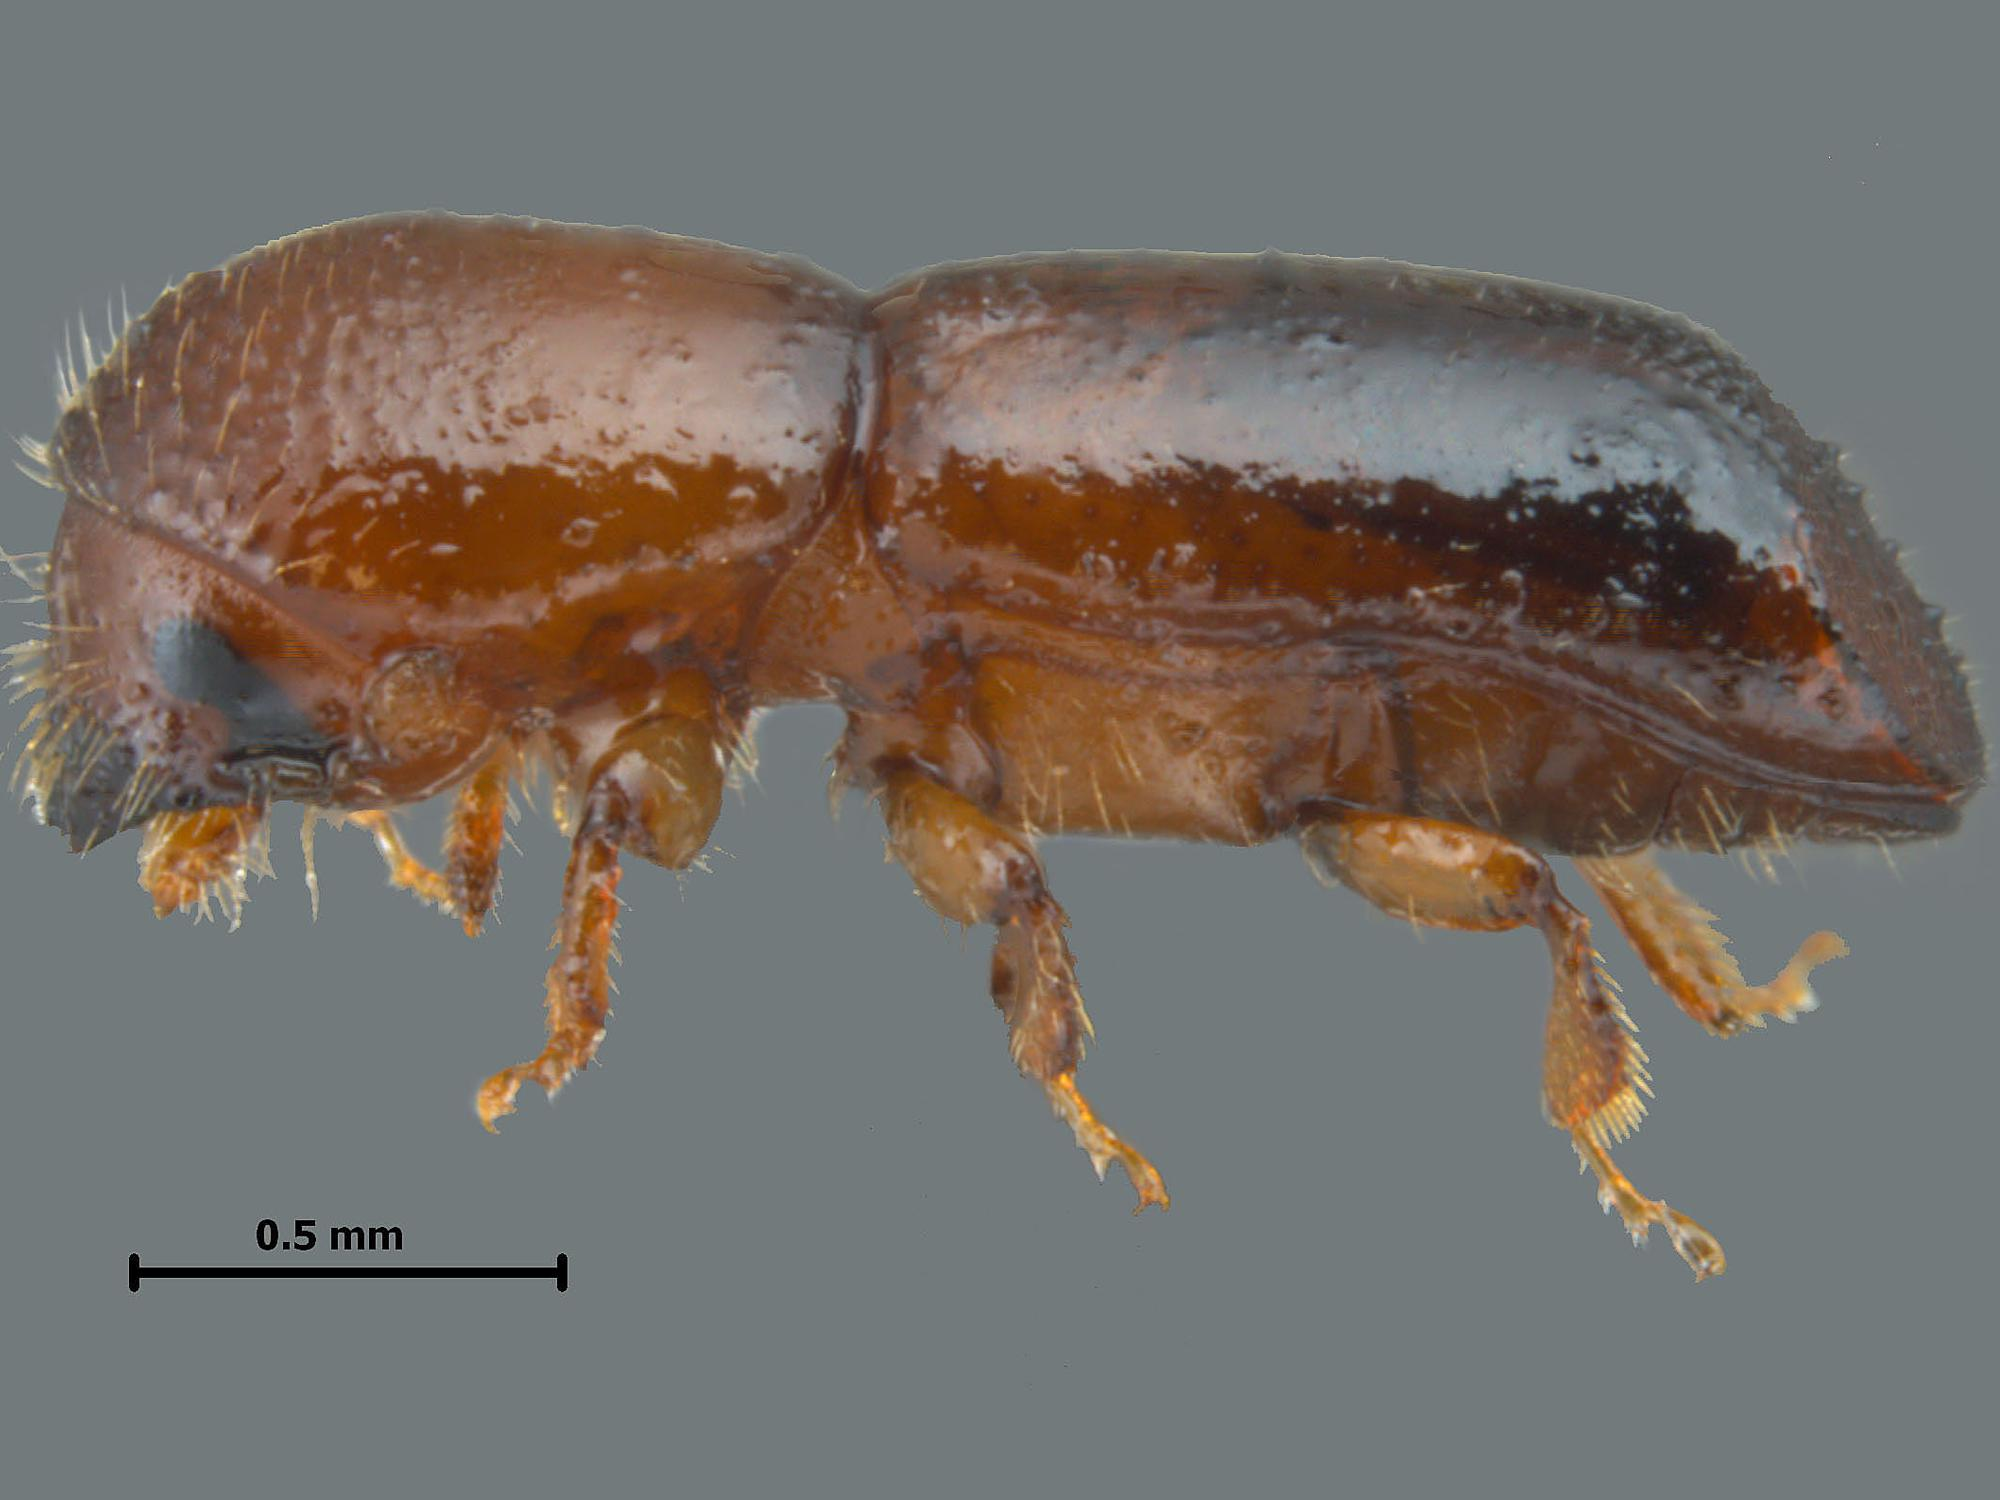 The tiny redbay ambrosia beetle was first found in the U.S. in 2002. It carries a fungus that is devastating to any tree or shrub species in the laurel family. (Photo by Mississippi Entomological Museum/Joe A. MacGown)